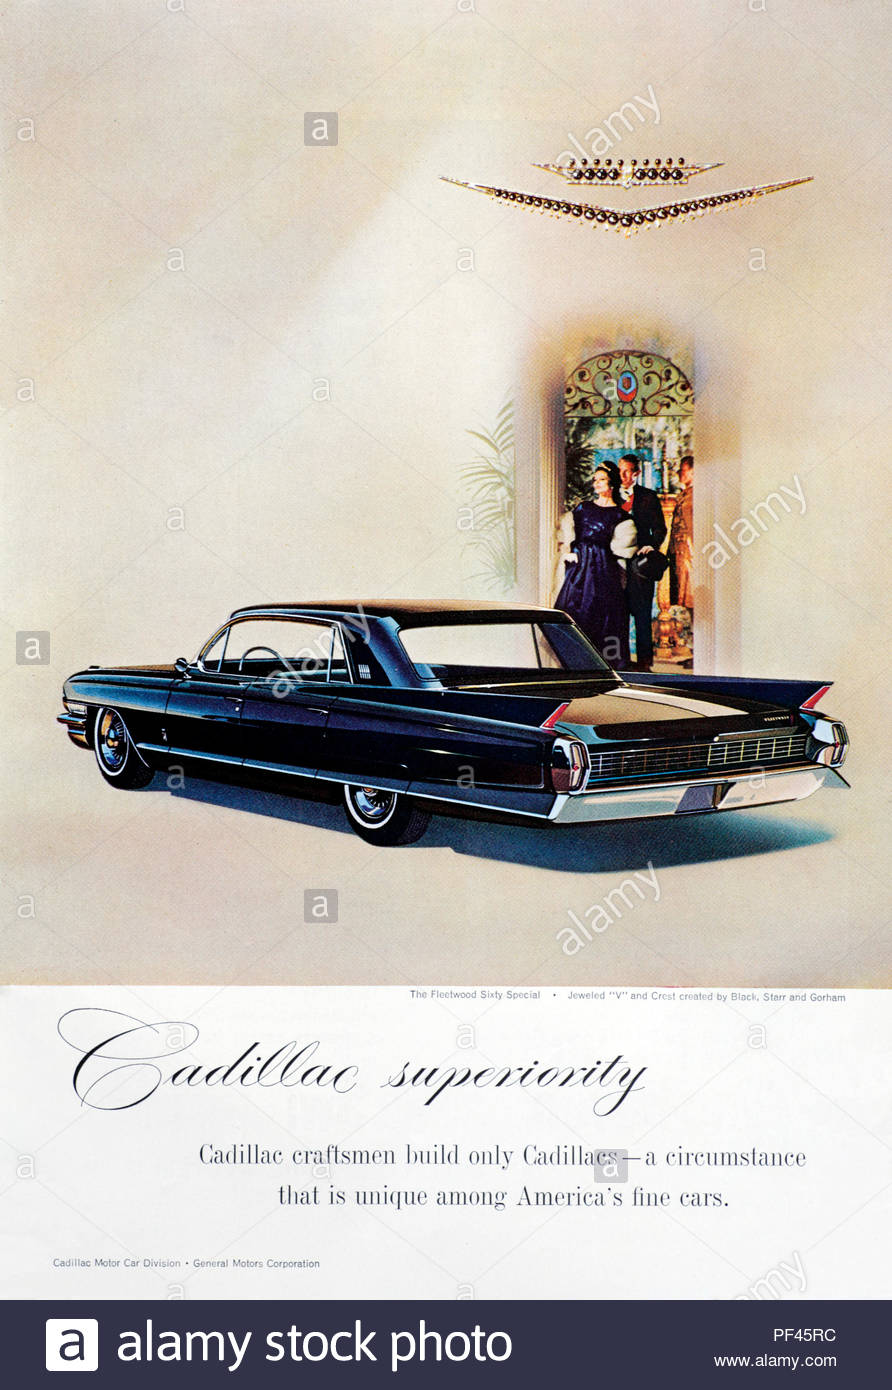 Vintage advertising for the Cadillac Fleetwood Sixty Special Car 1962 - Stock Image